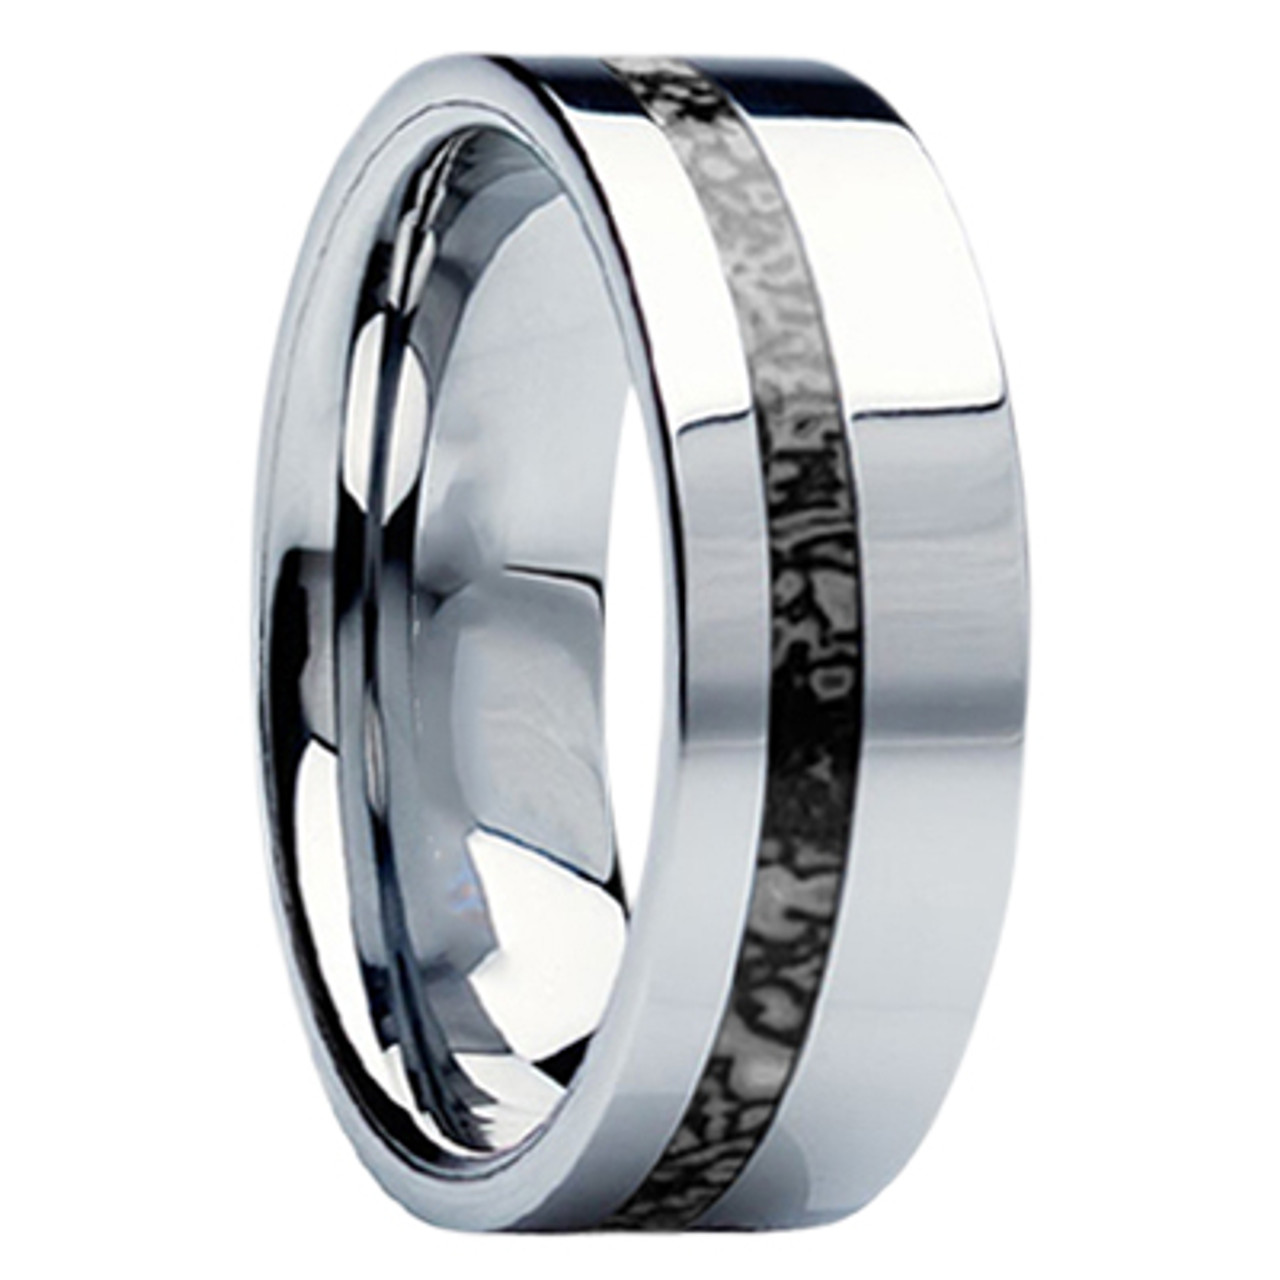 8 Mm Unique Mens Wedding Bands In Anium With Dinosaur Bone Inlay D116m